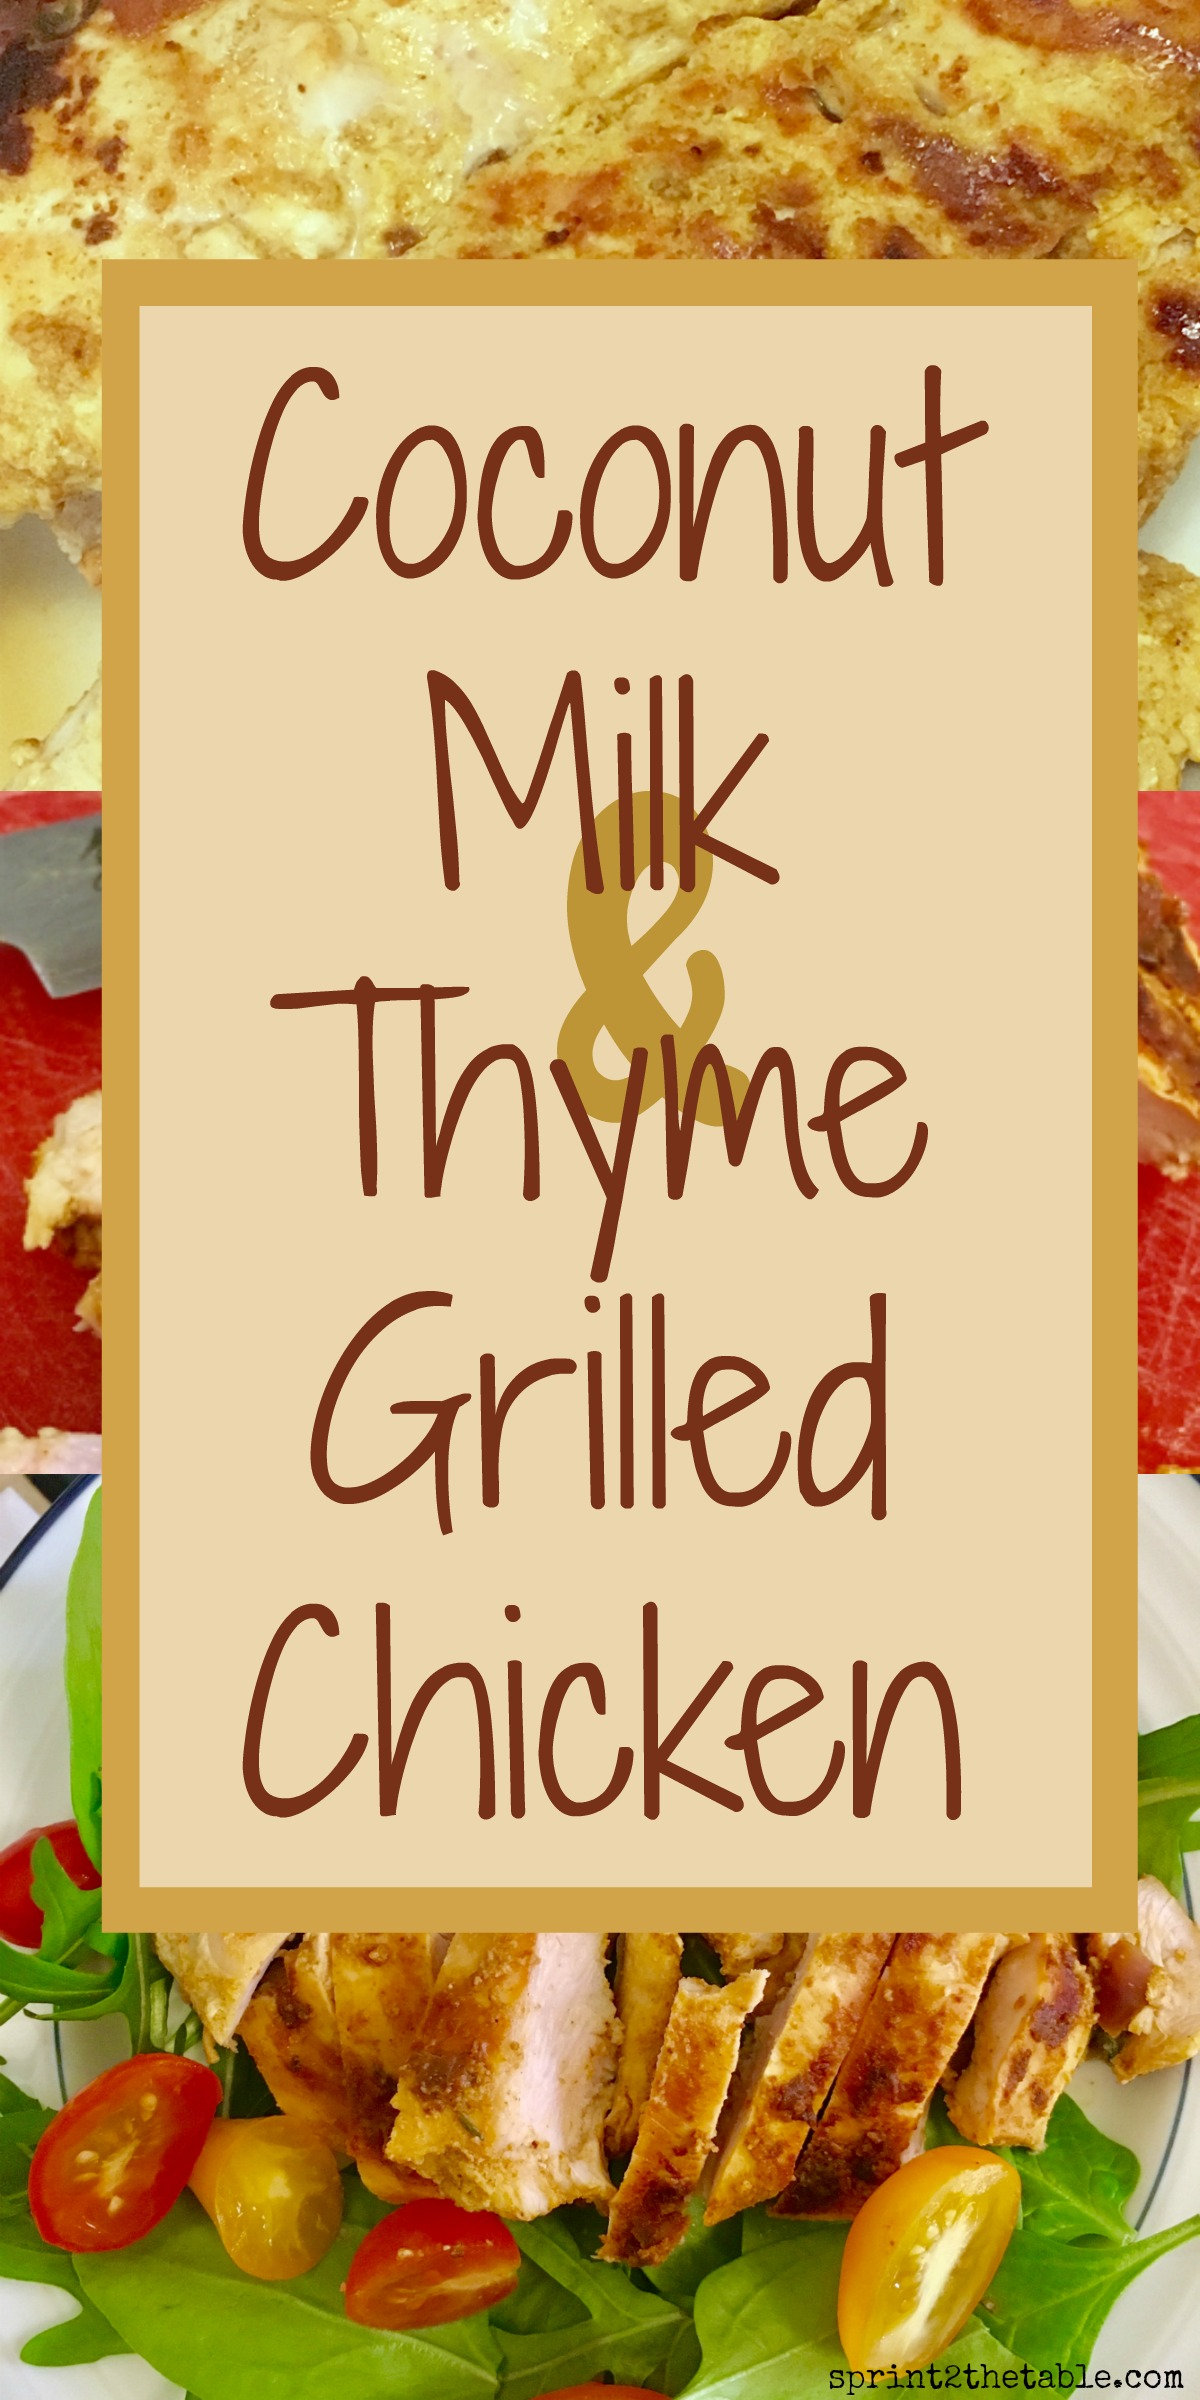 This Coconut Milk & Thyme Grilled Chicken recipe is a delicious and easy to make, healthy dinner! The chicken is marinated in thyme-infused coconut milk, garlic, and warm spices.